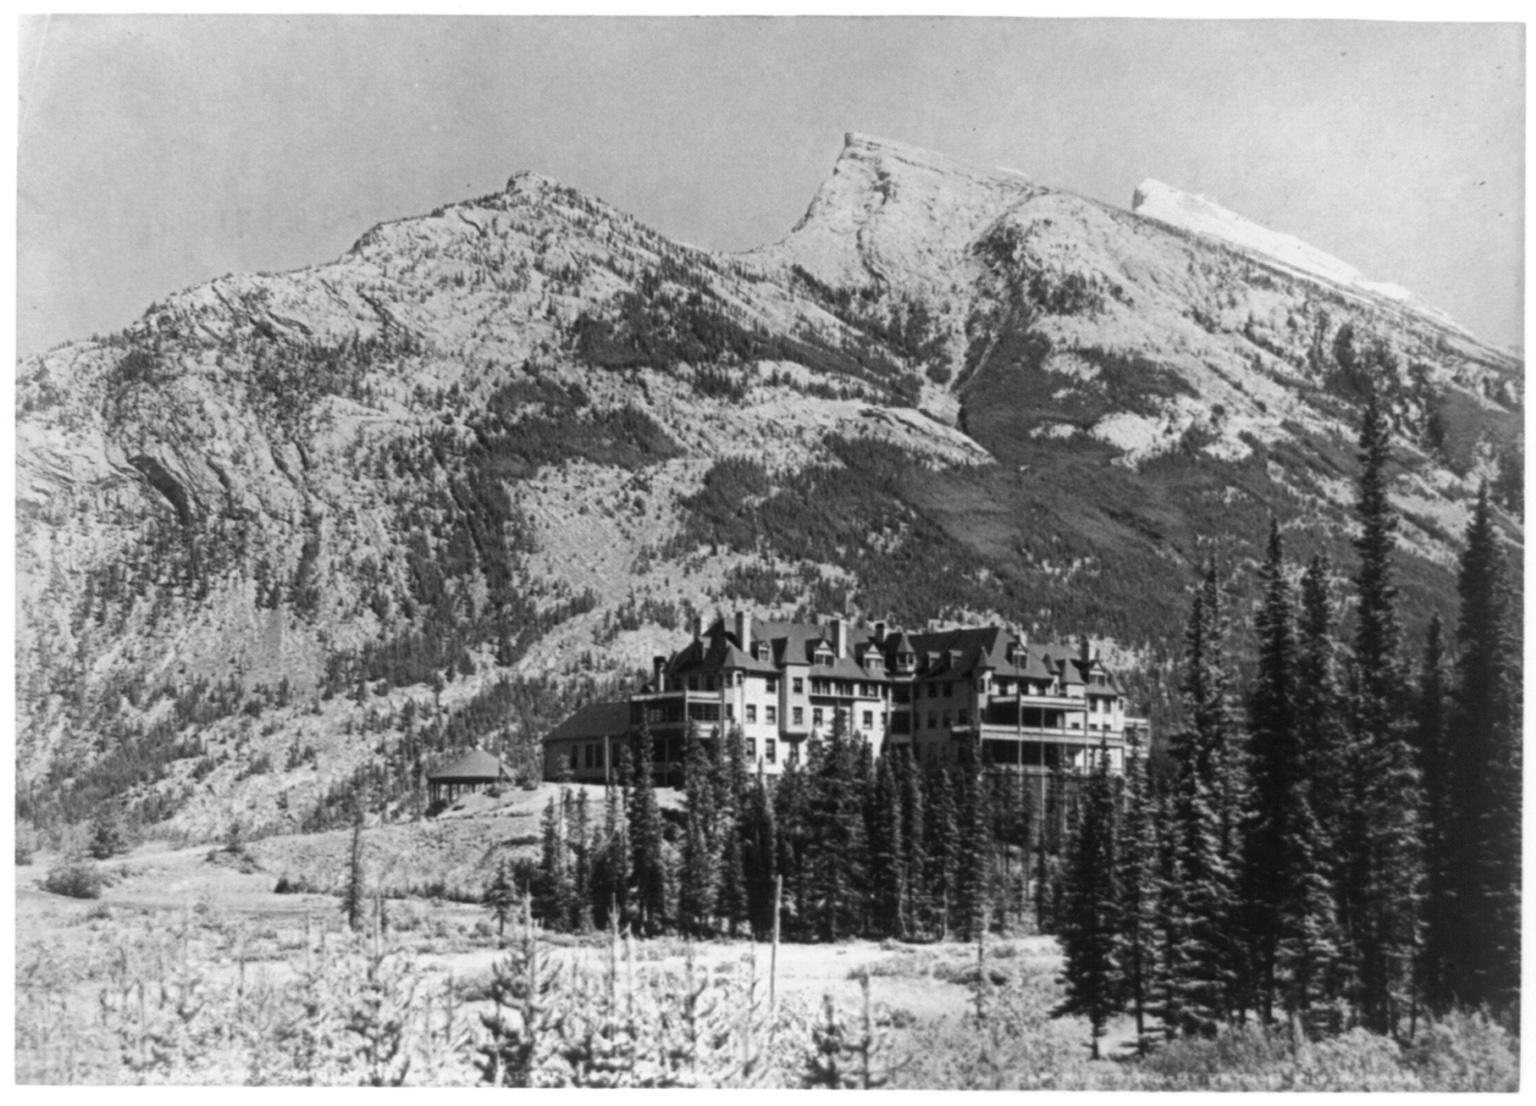 Banff Springs Hotel in 1902